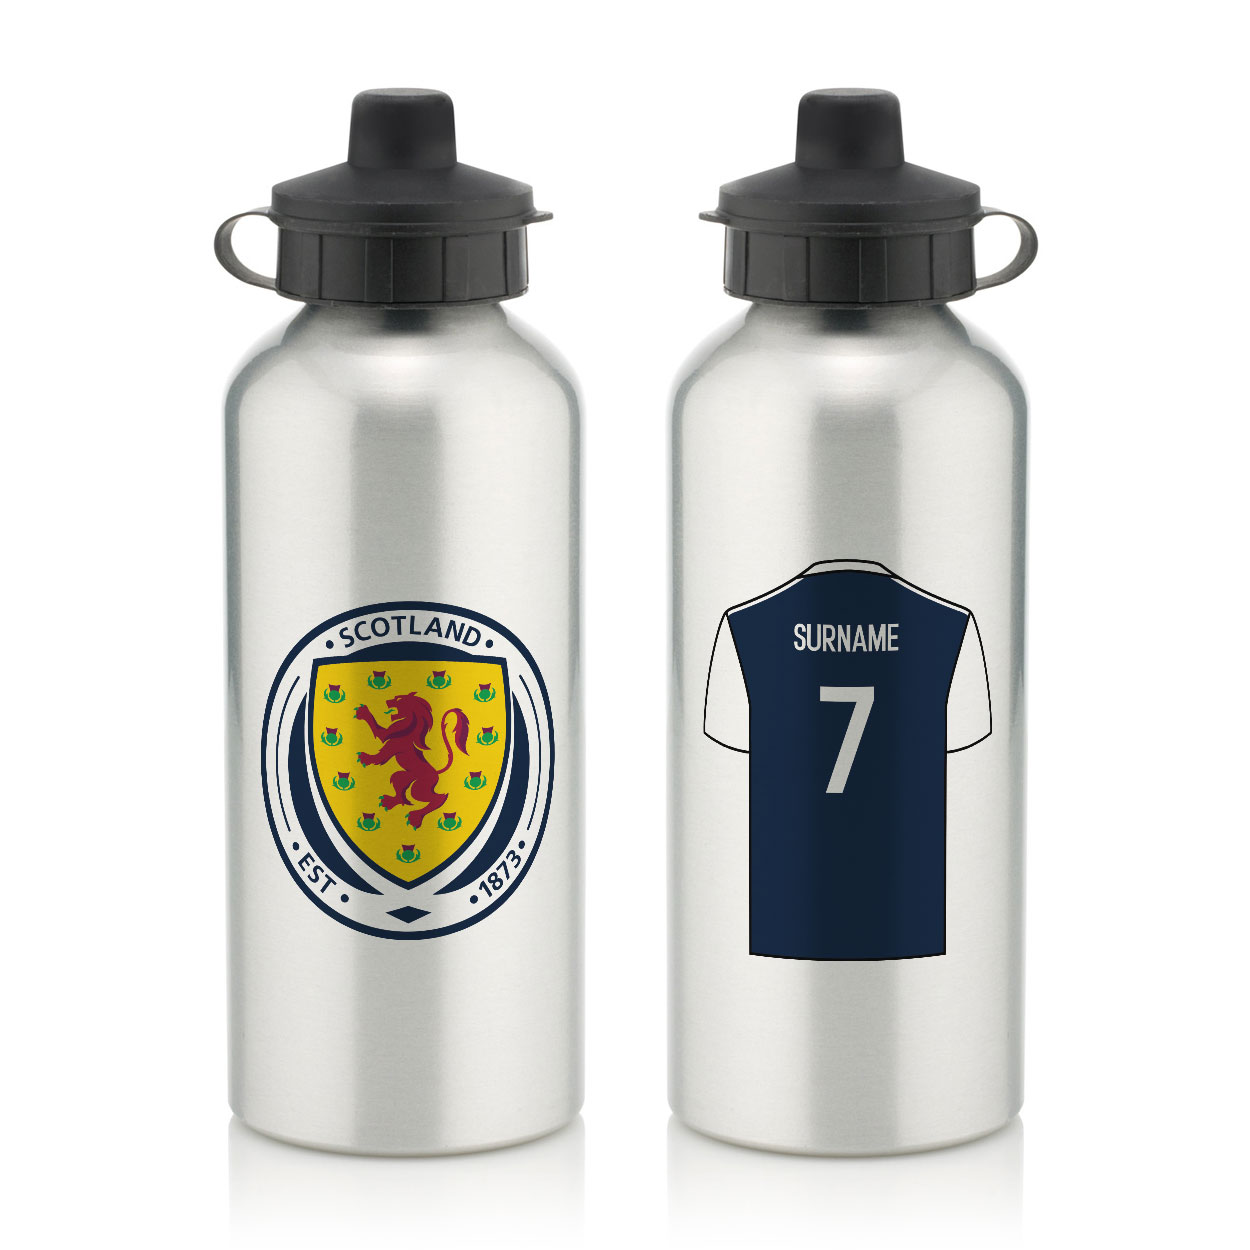 Scotland Aluminium Water Bottle